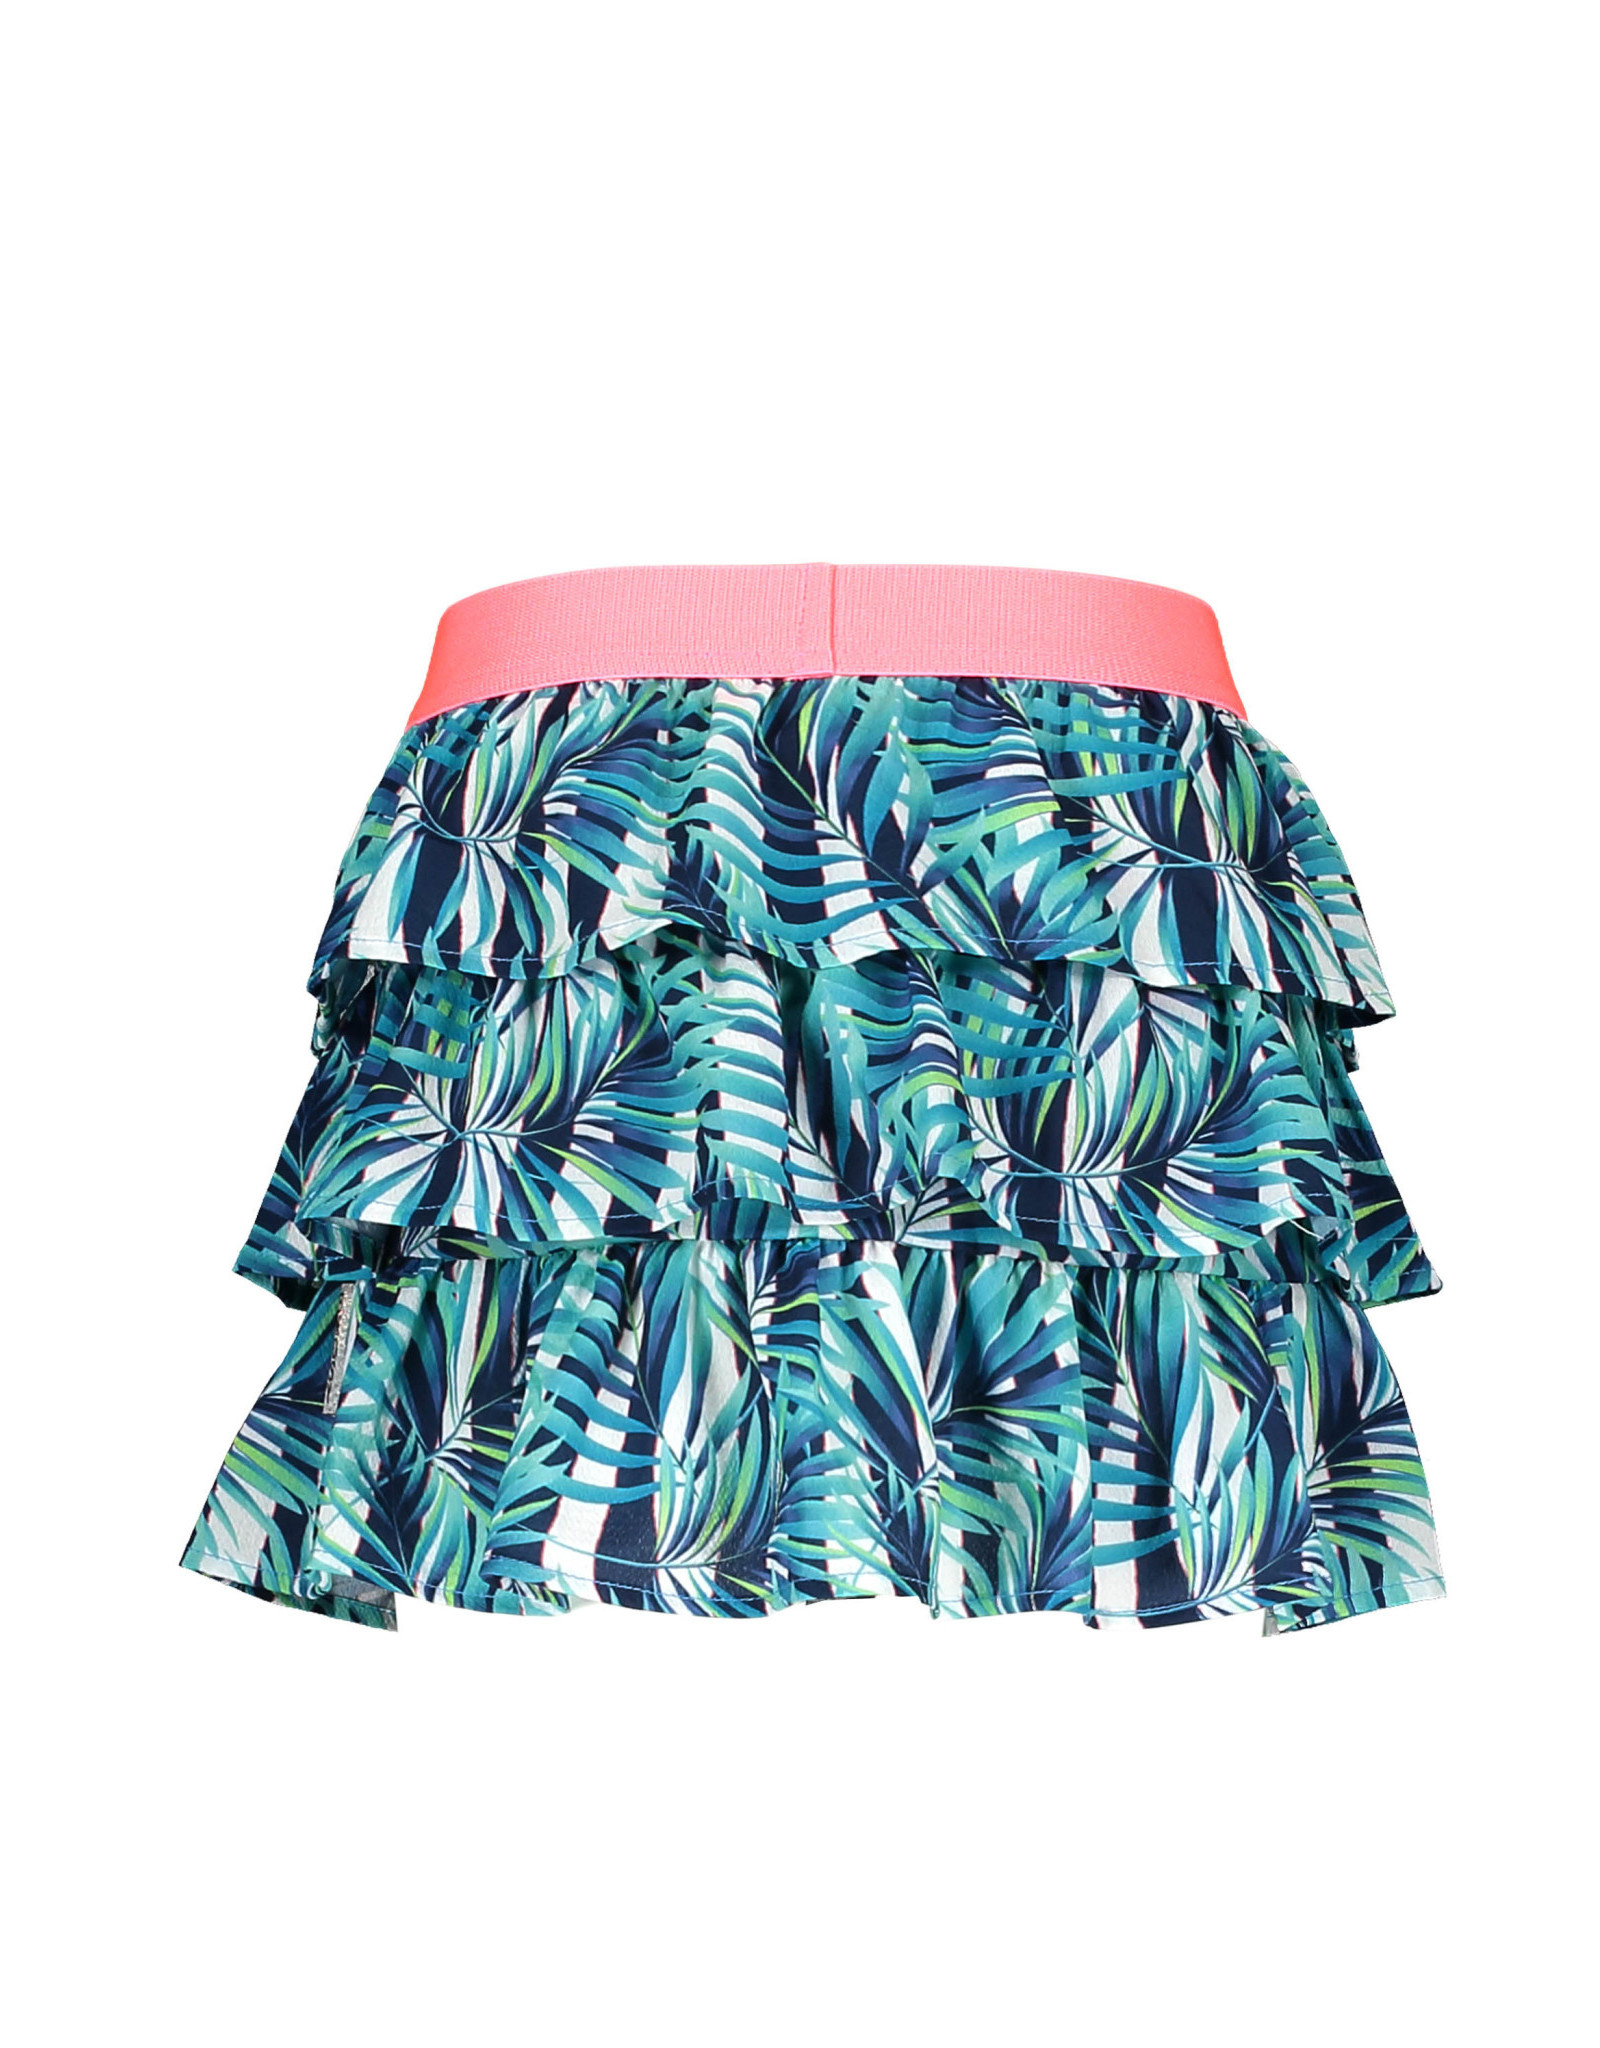 B-nosy Girls woven tropical palm ao layered skirt 331 Tropical palm ao